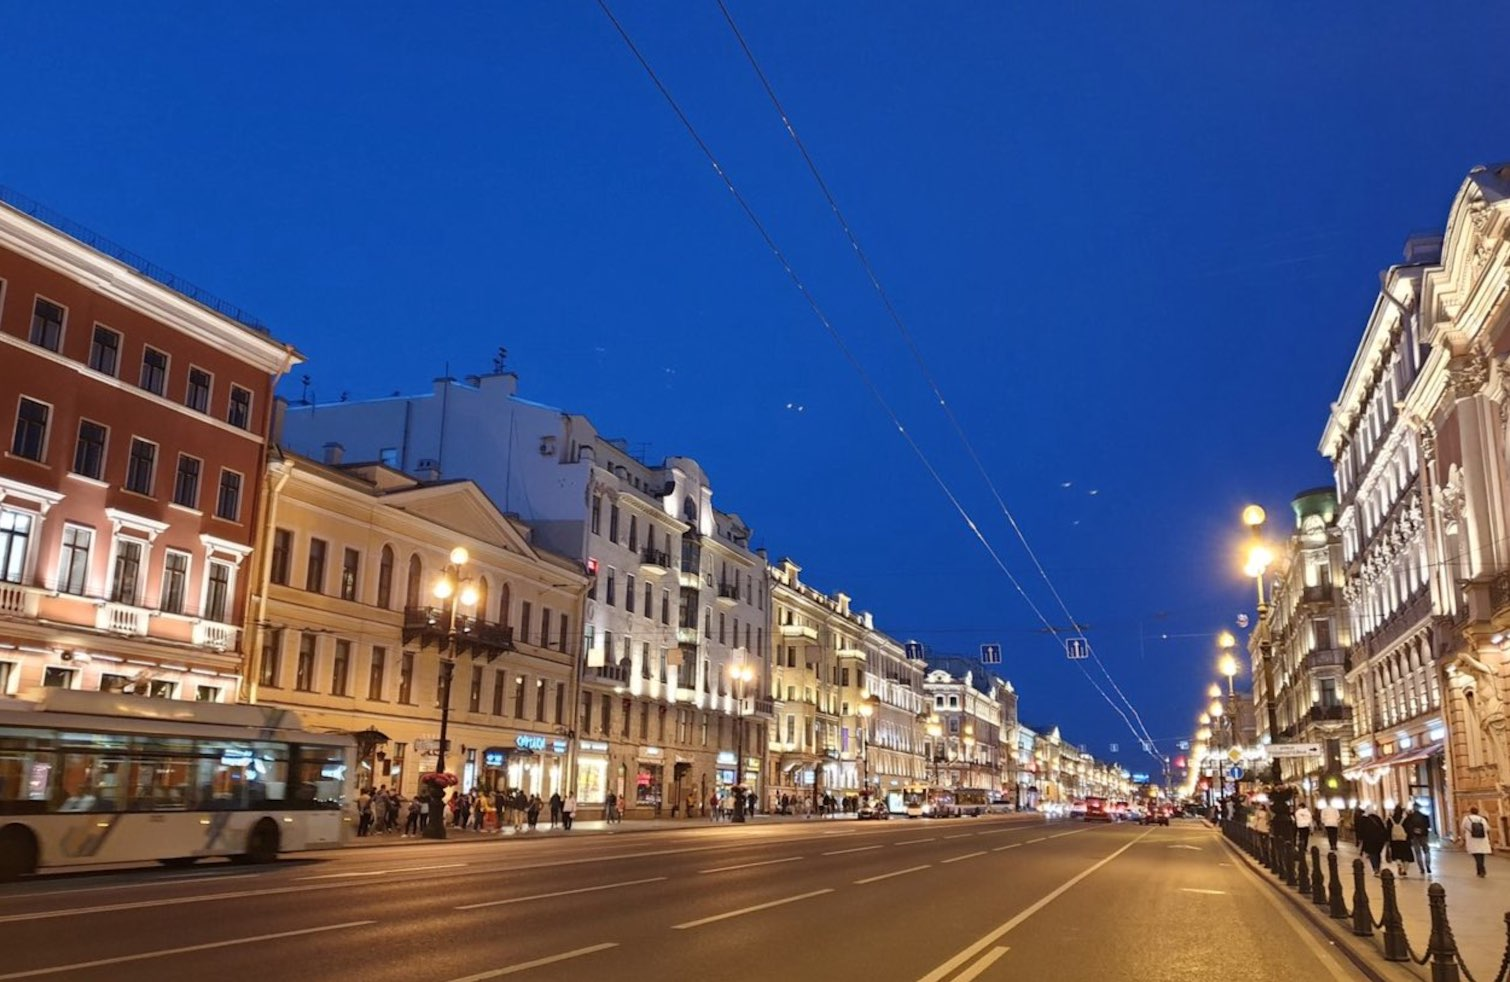 Nevsky Prospect in St Petersburg at night